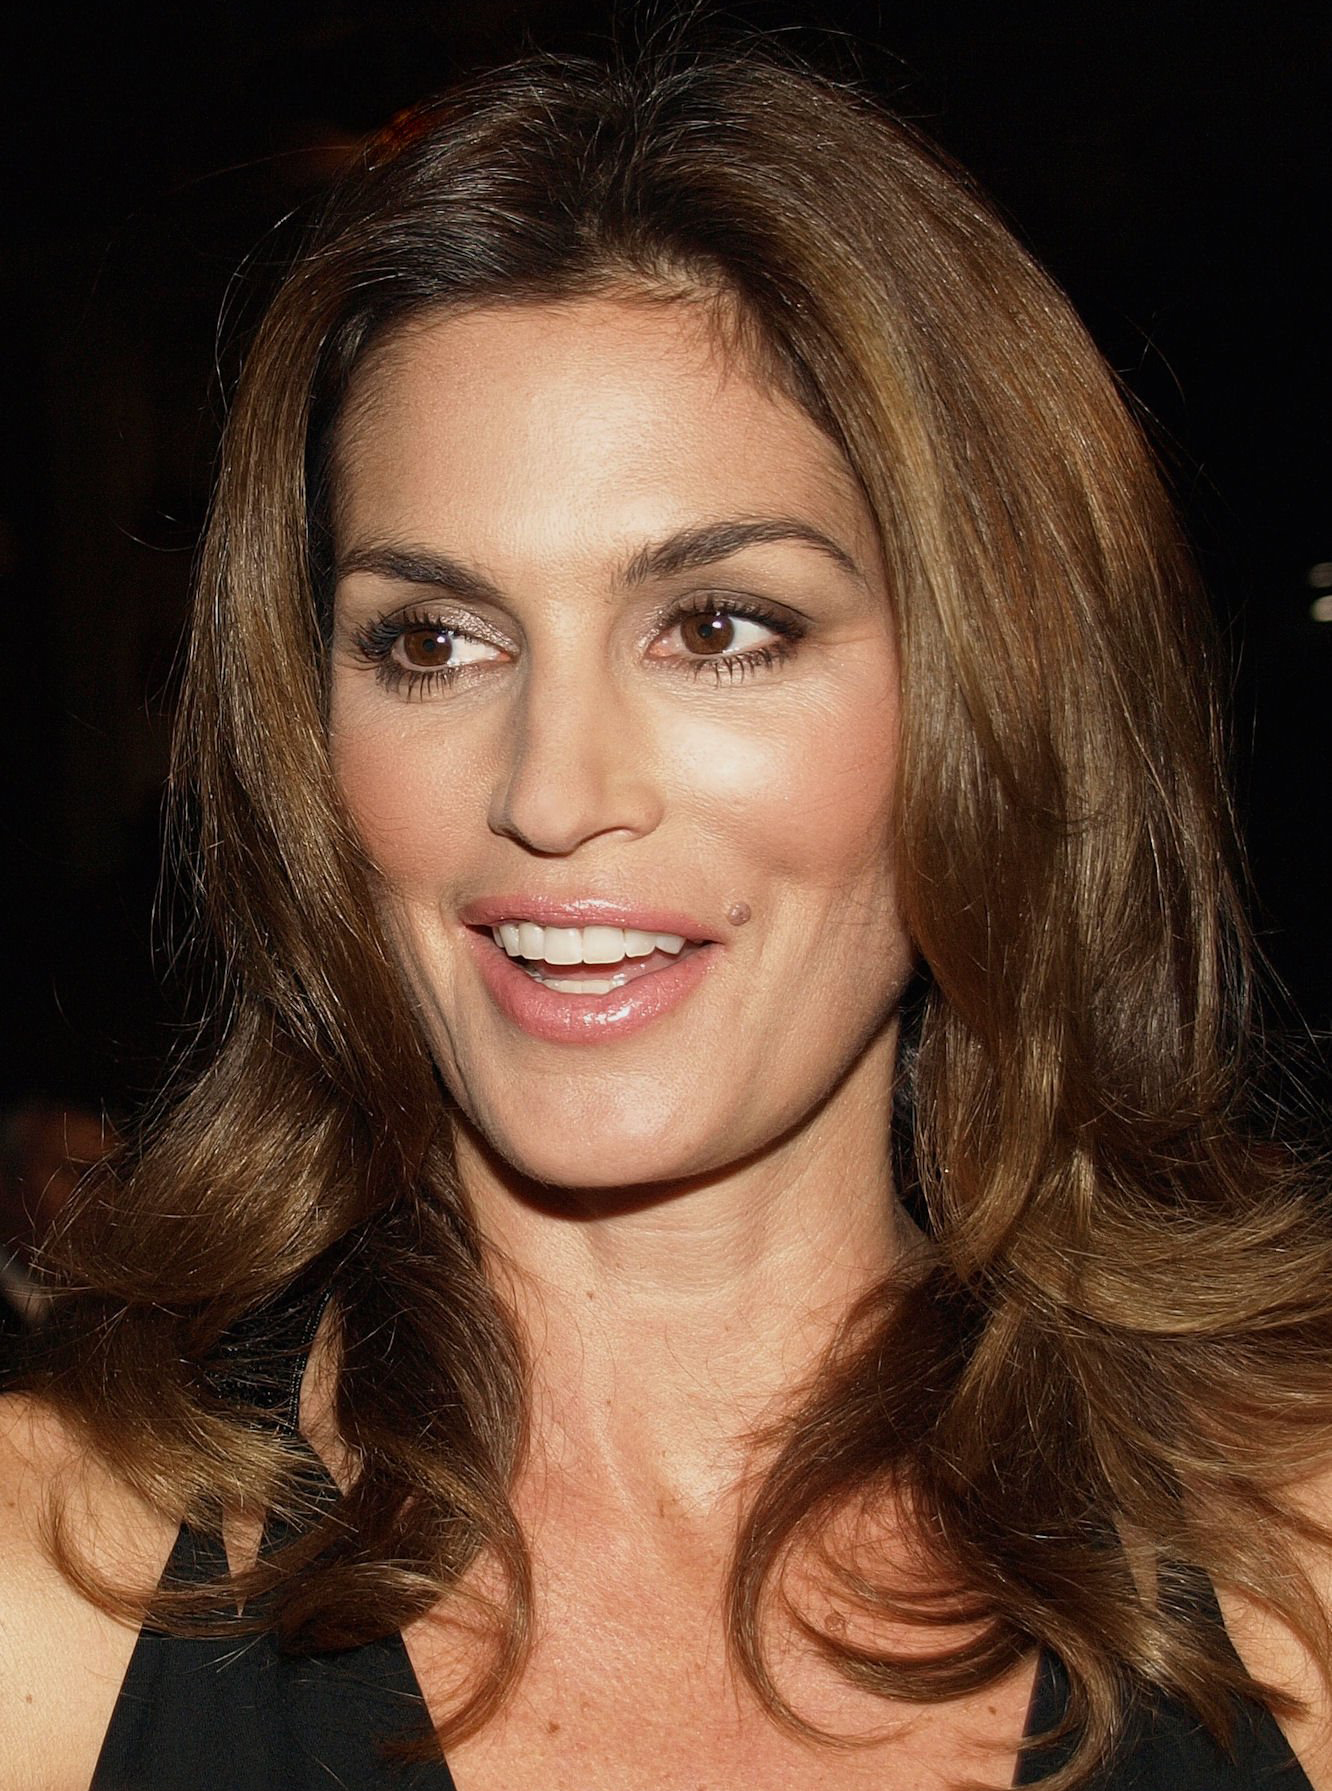 Cindy crawford a-2457